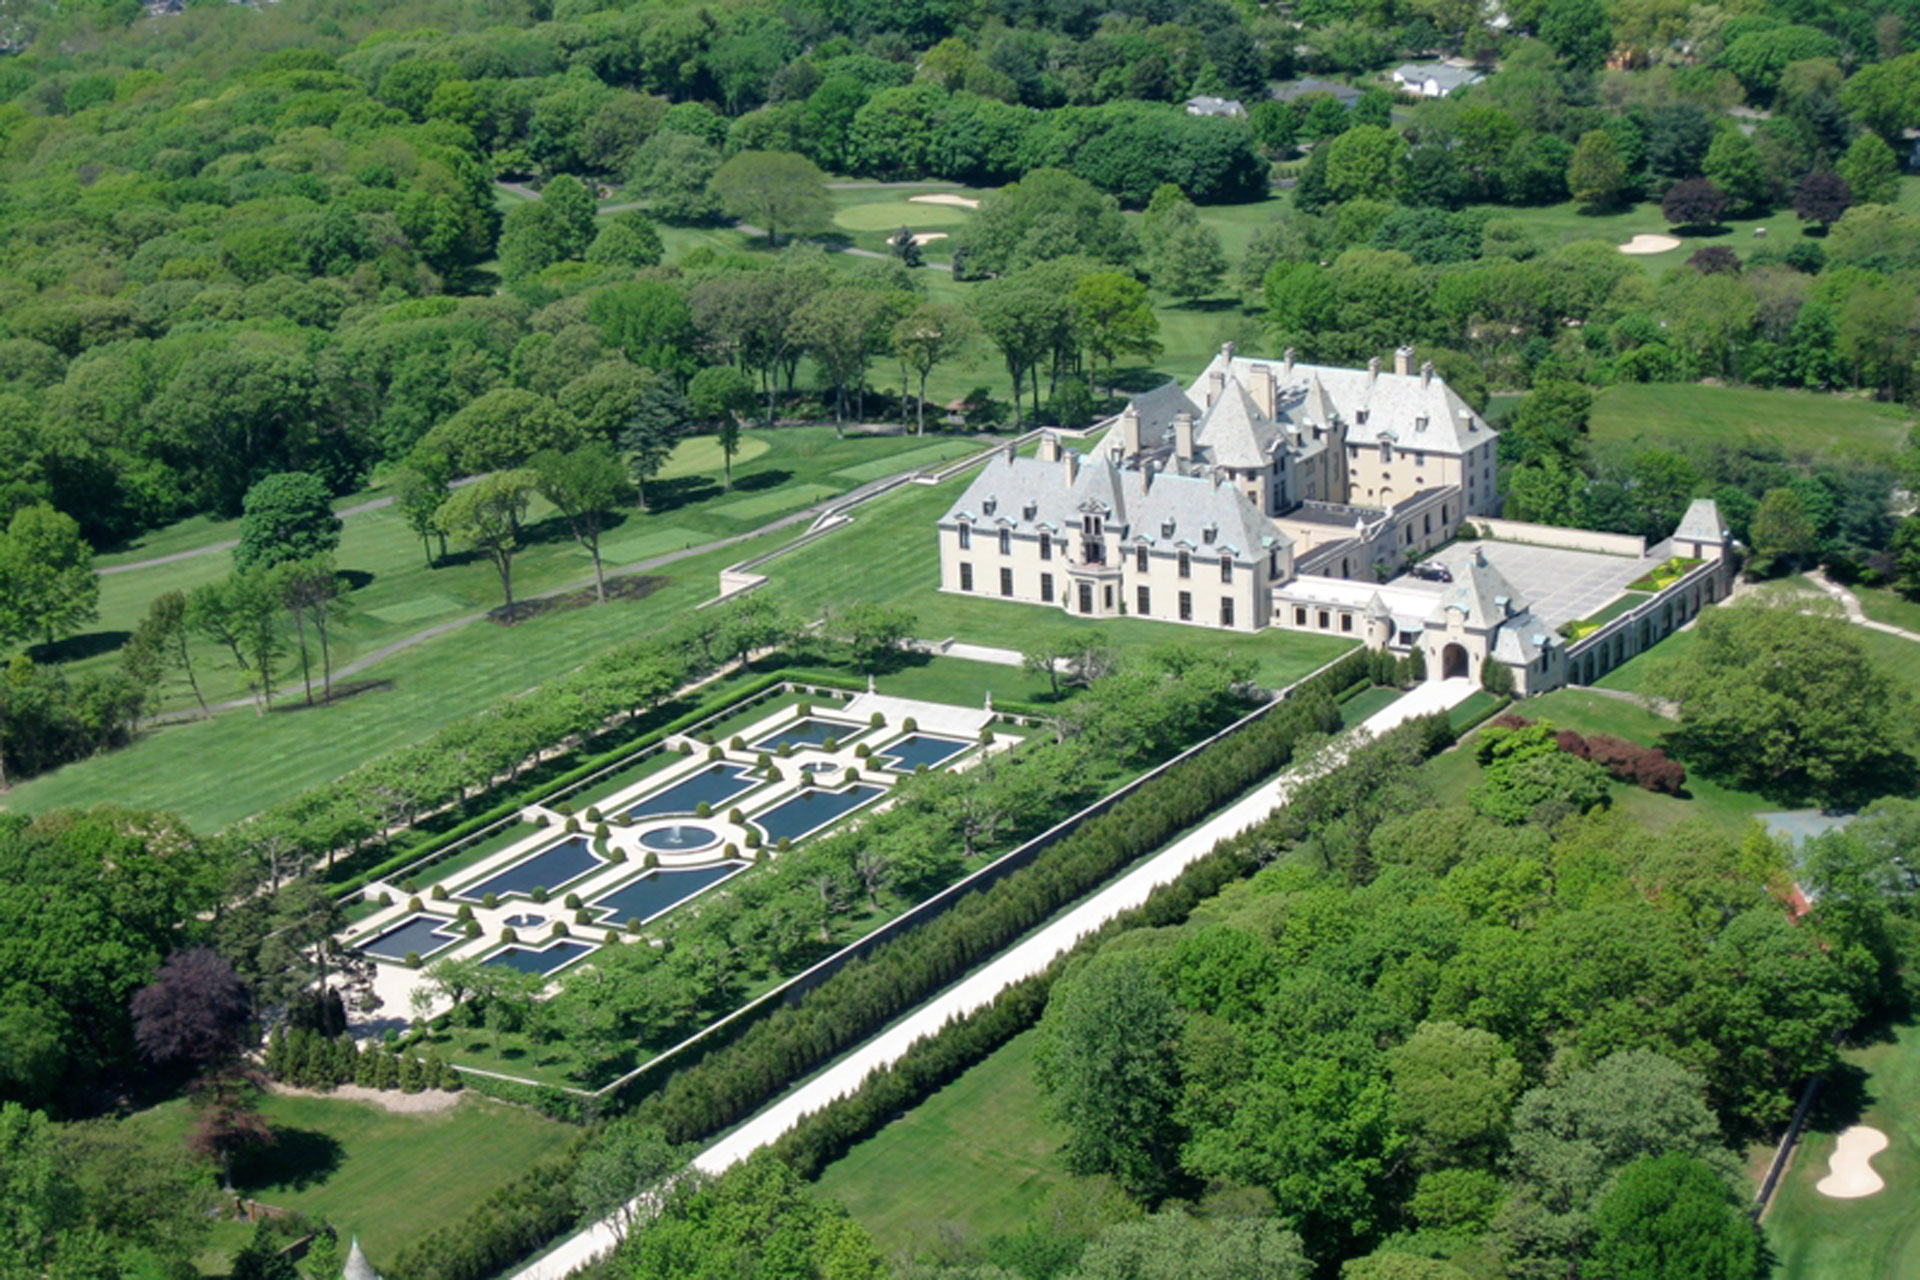 Aerial shot of Oheka Castle and gardens